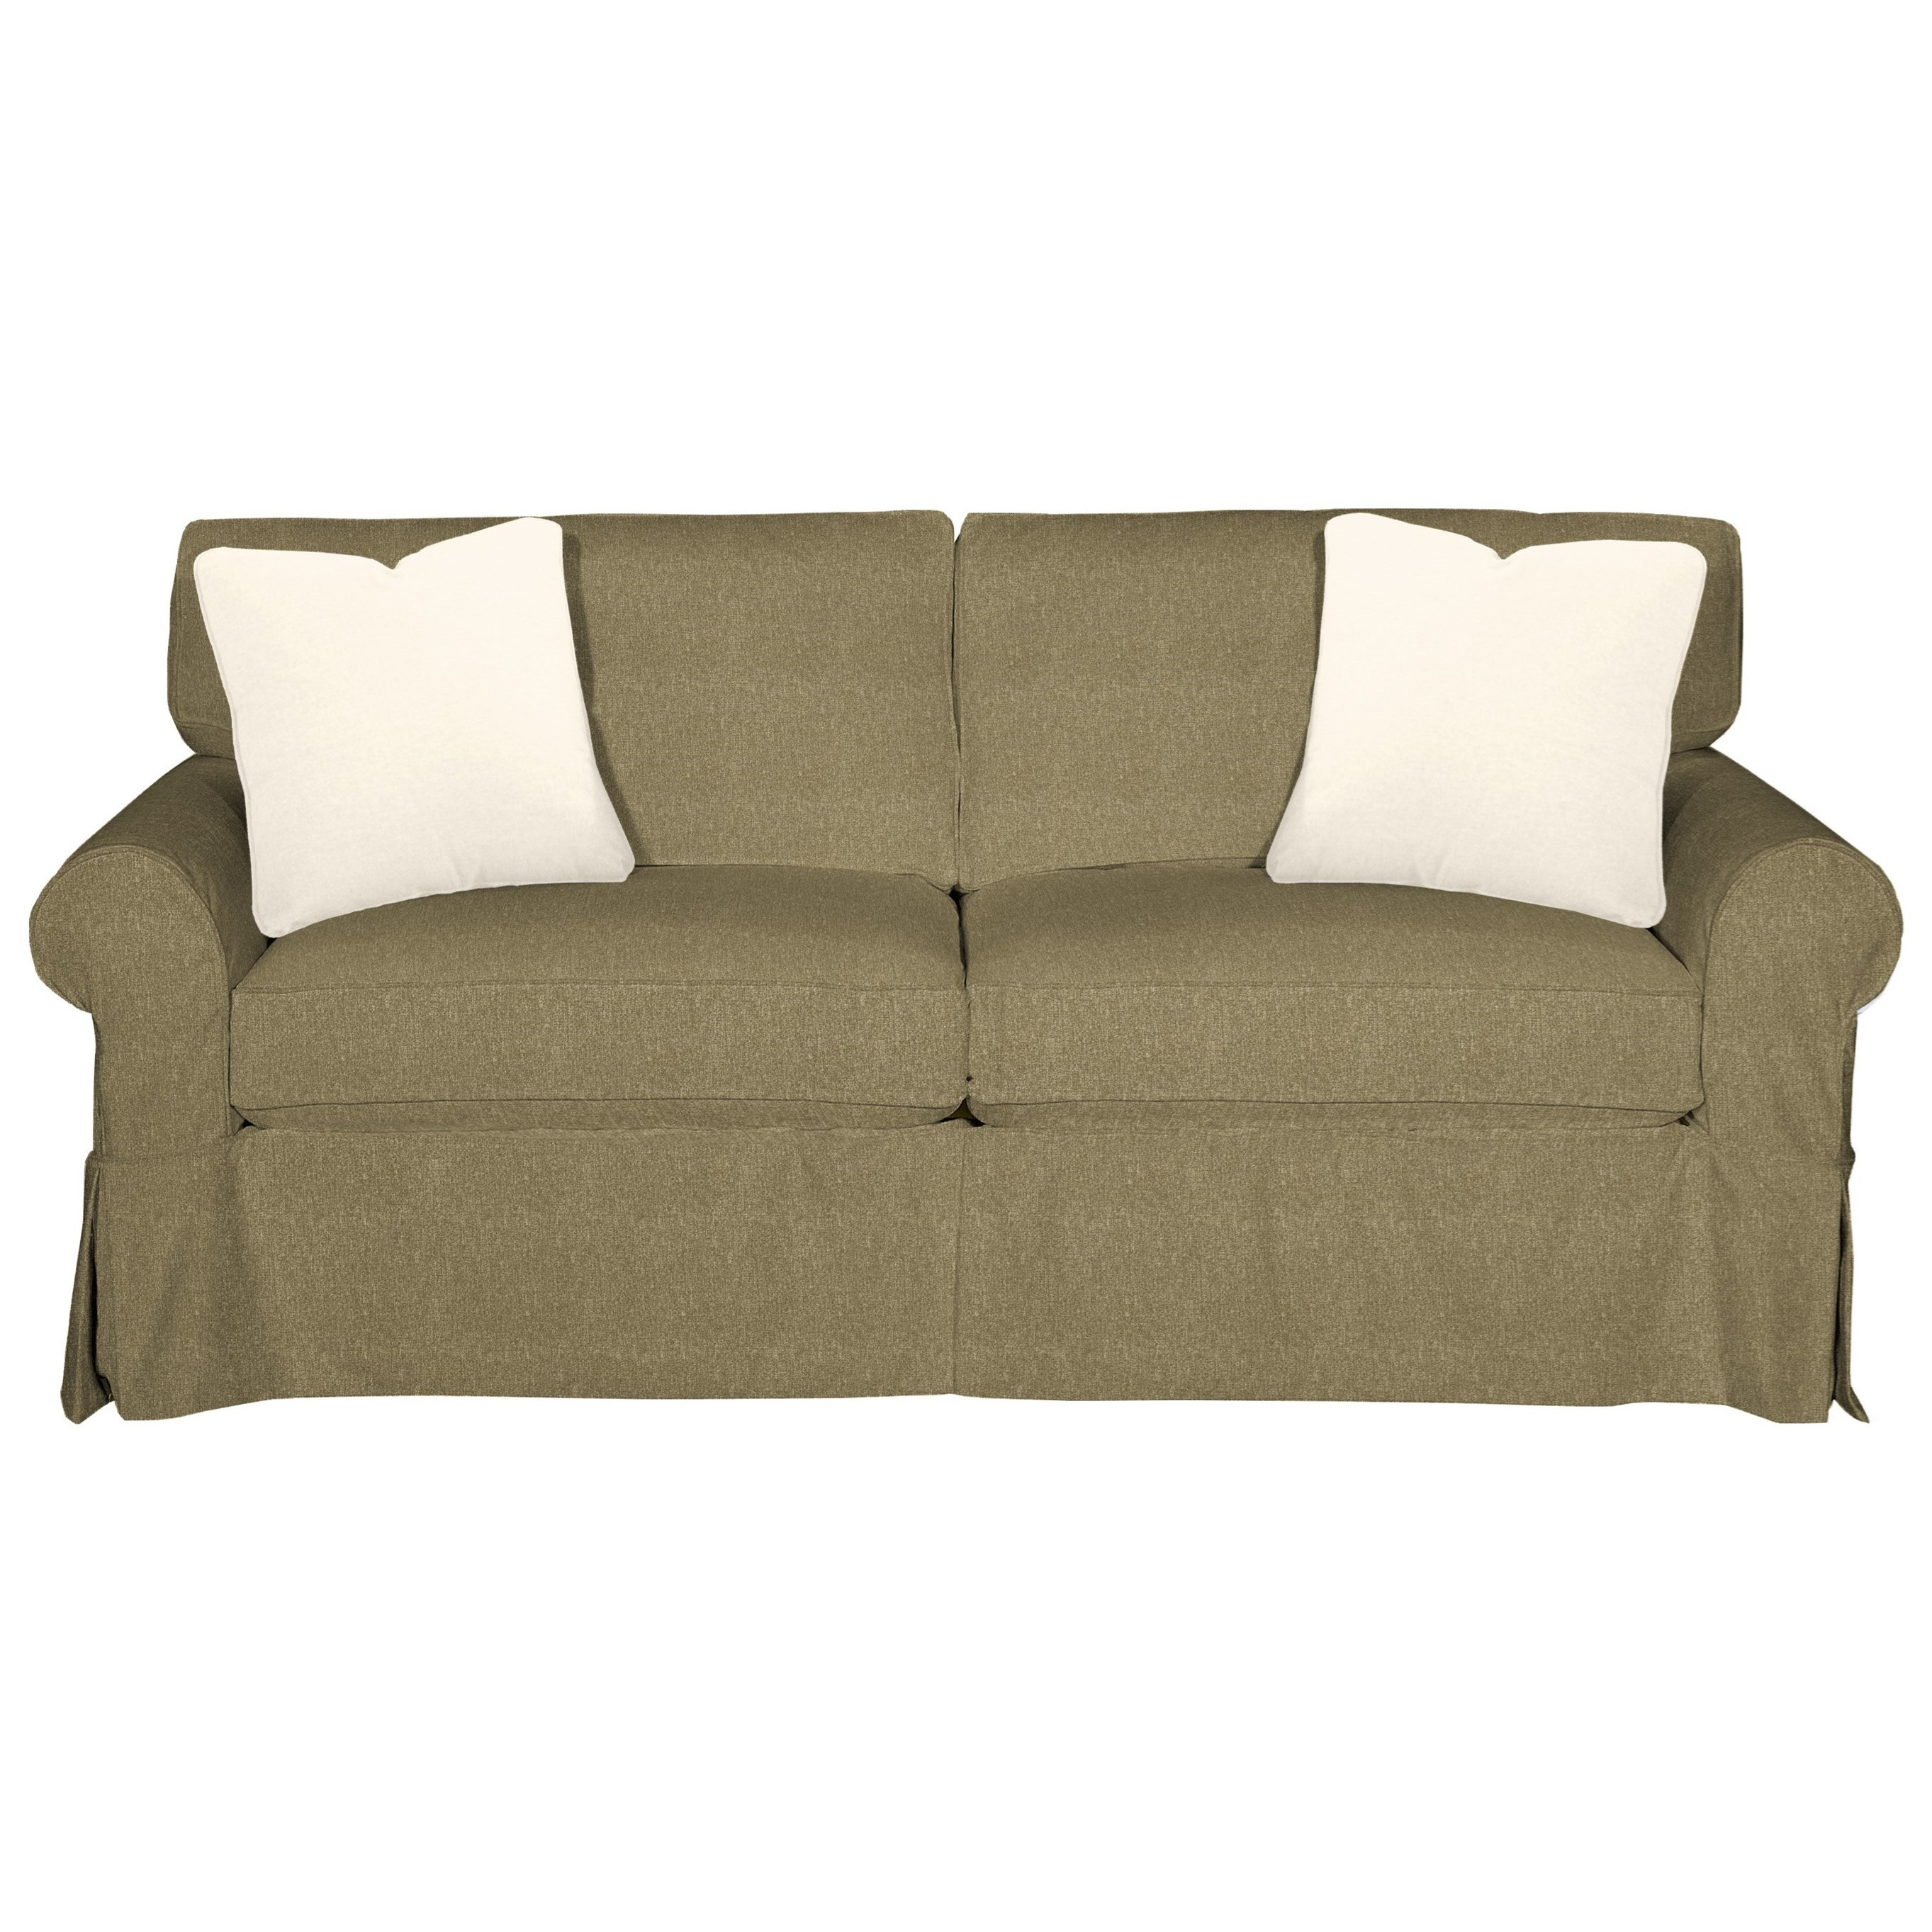 9228 Sleeper Sofa w/ Innerspring Mattress by Craftmaster at VanDrie Home Furnishings